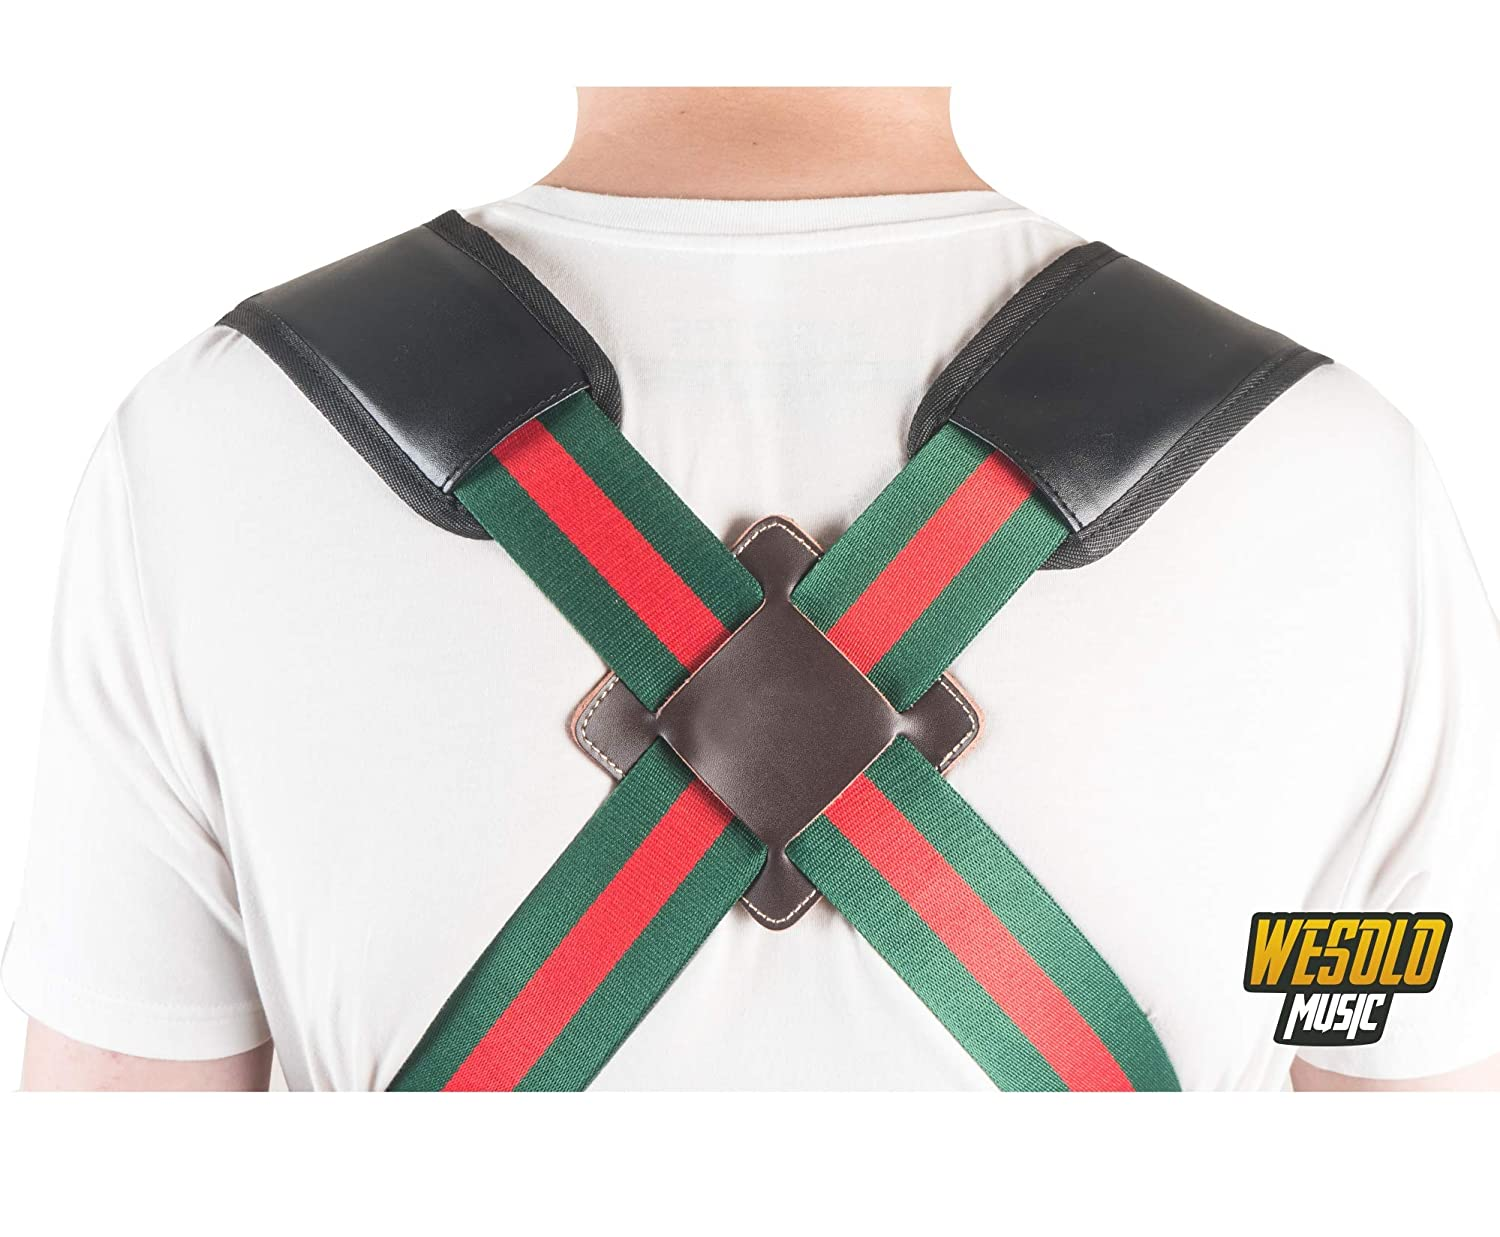 2019 New Djembe Strap Hand Drum Shoulder Strap Harness Percussion Instrument Belt Green/&red